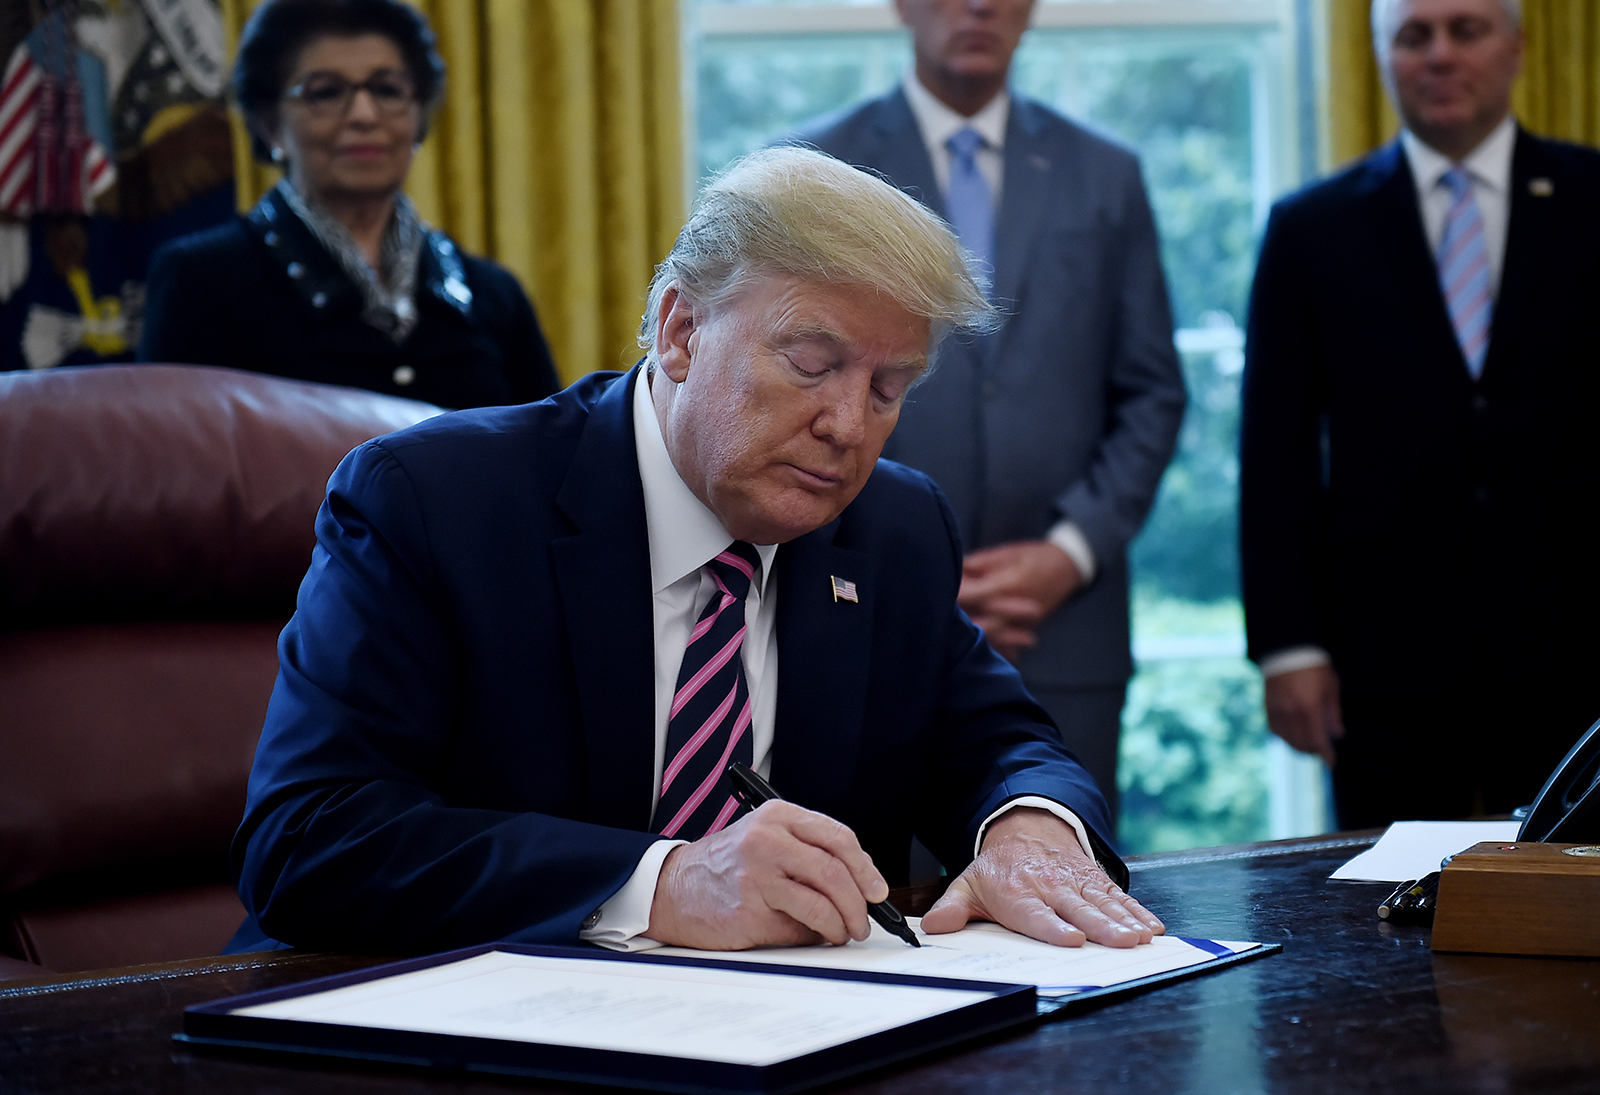 US President Donald Trump signs the Paycheck Protection Program and Health Care Enhancement Act in the Oval Office of the White House in Washington, DC, on April 24.